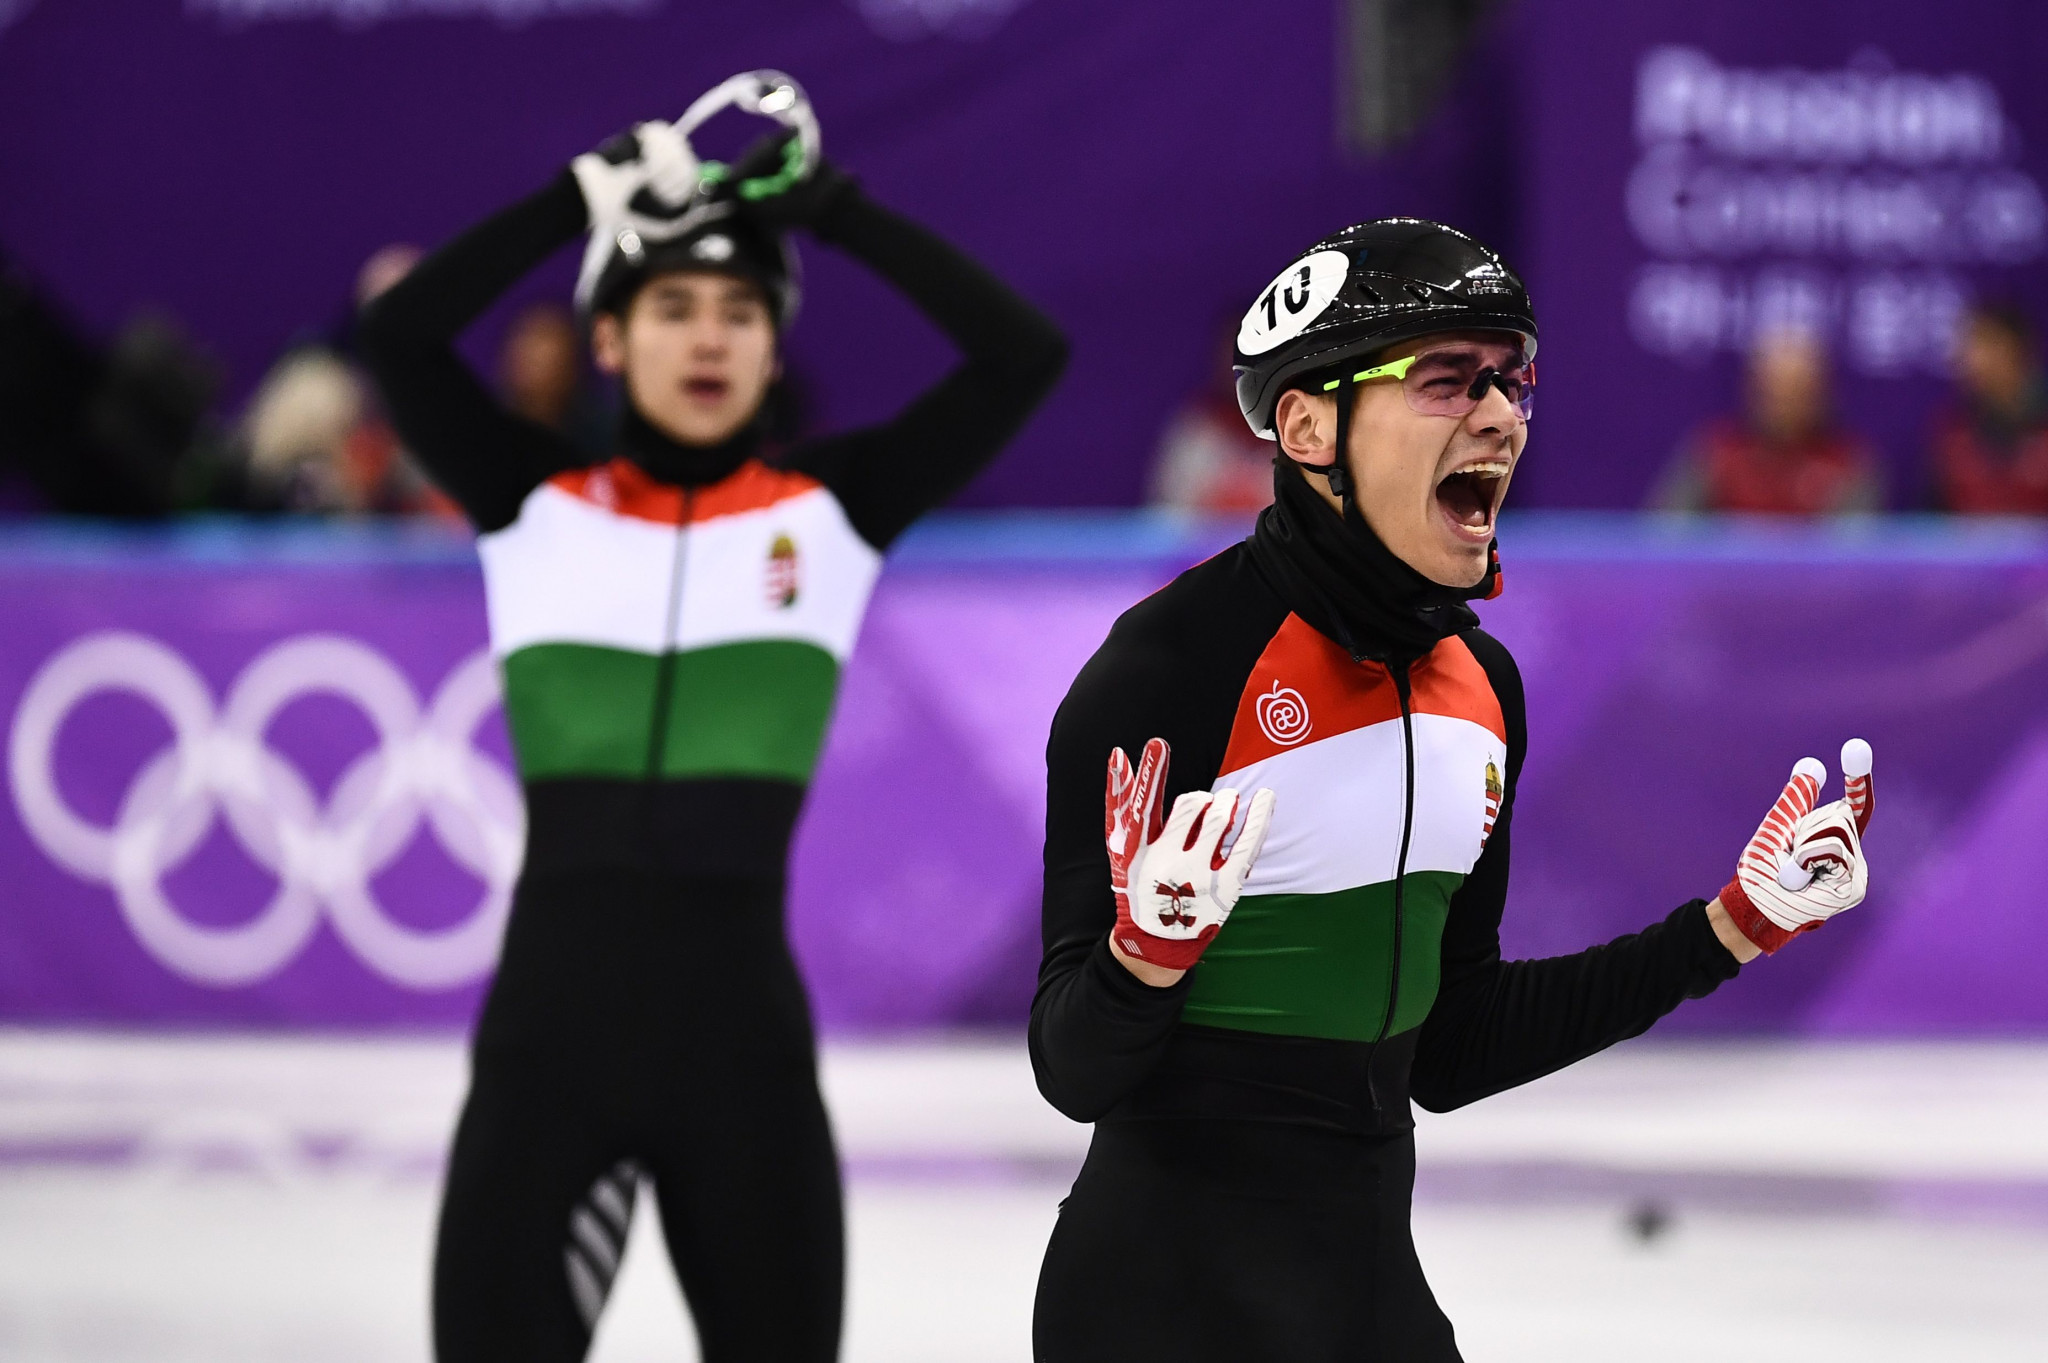 Hungary will host the 2020 European Short Track Championships ©Getty Images